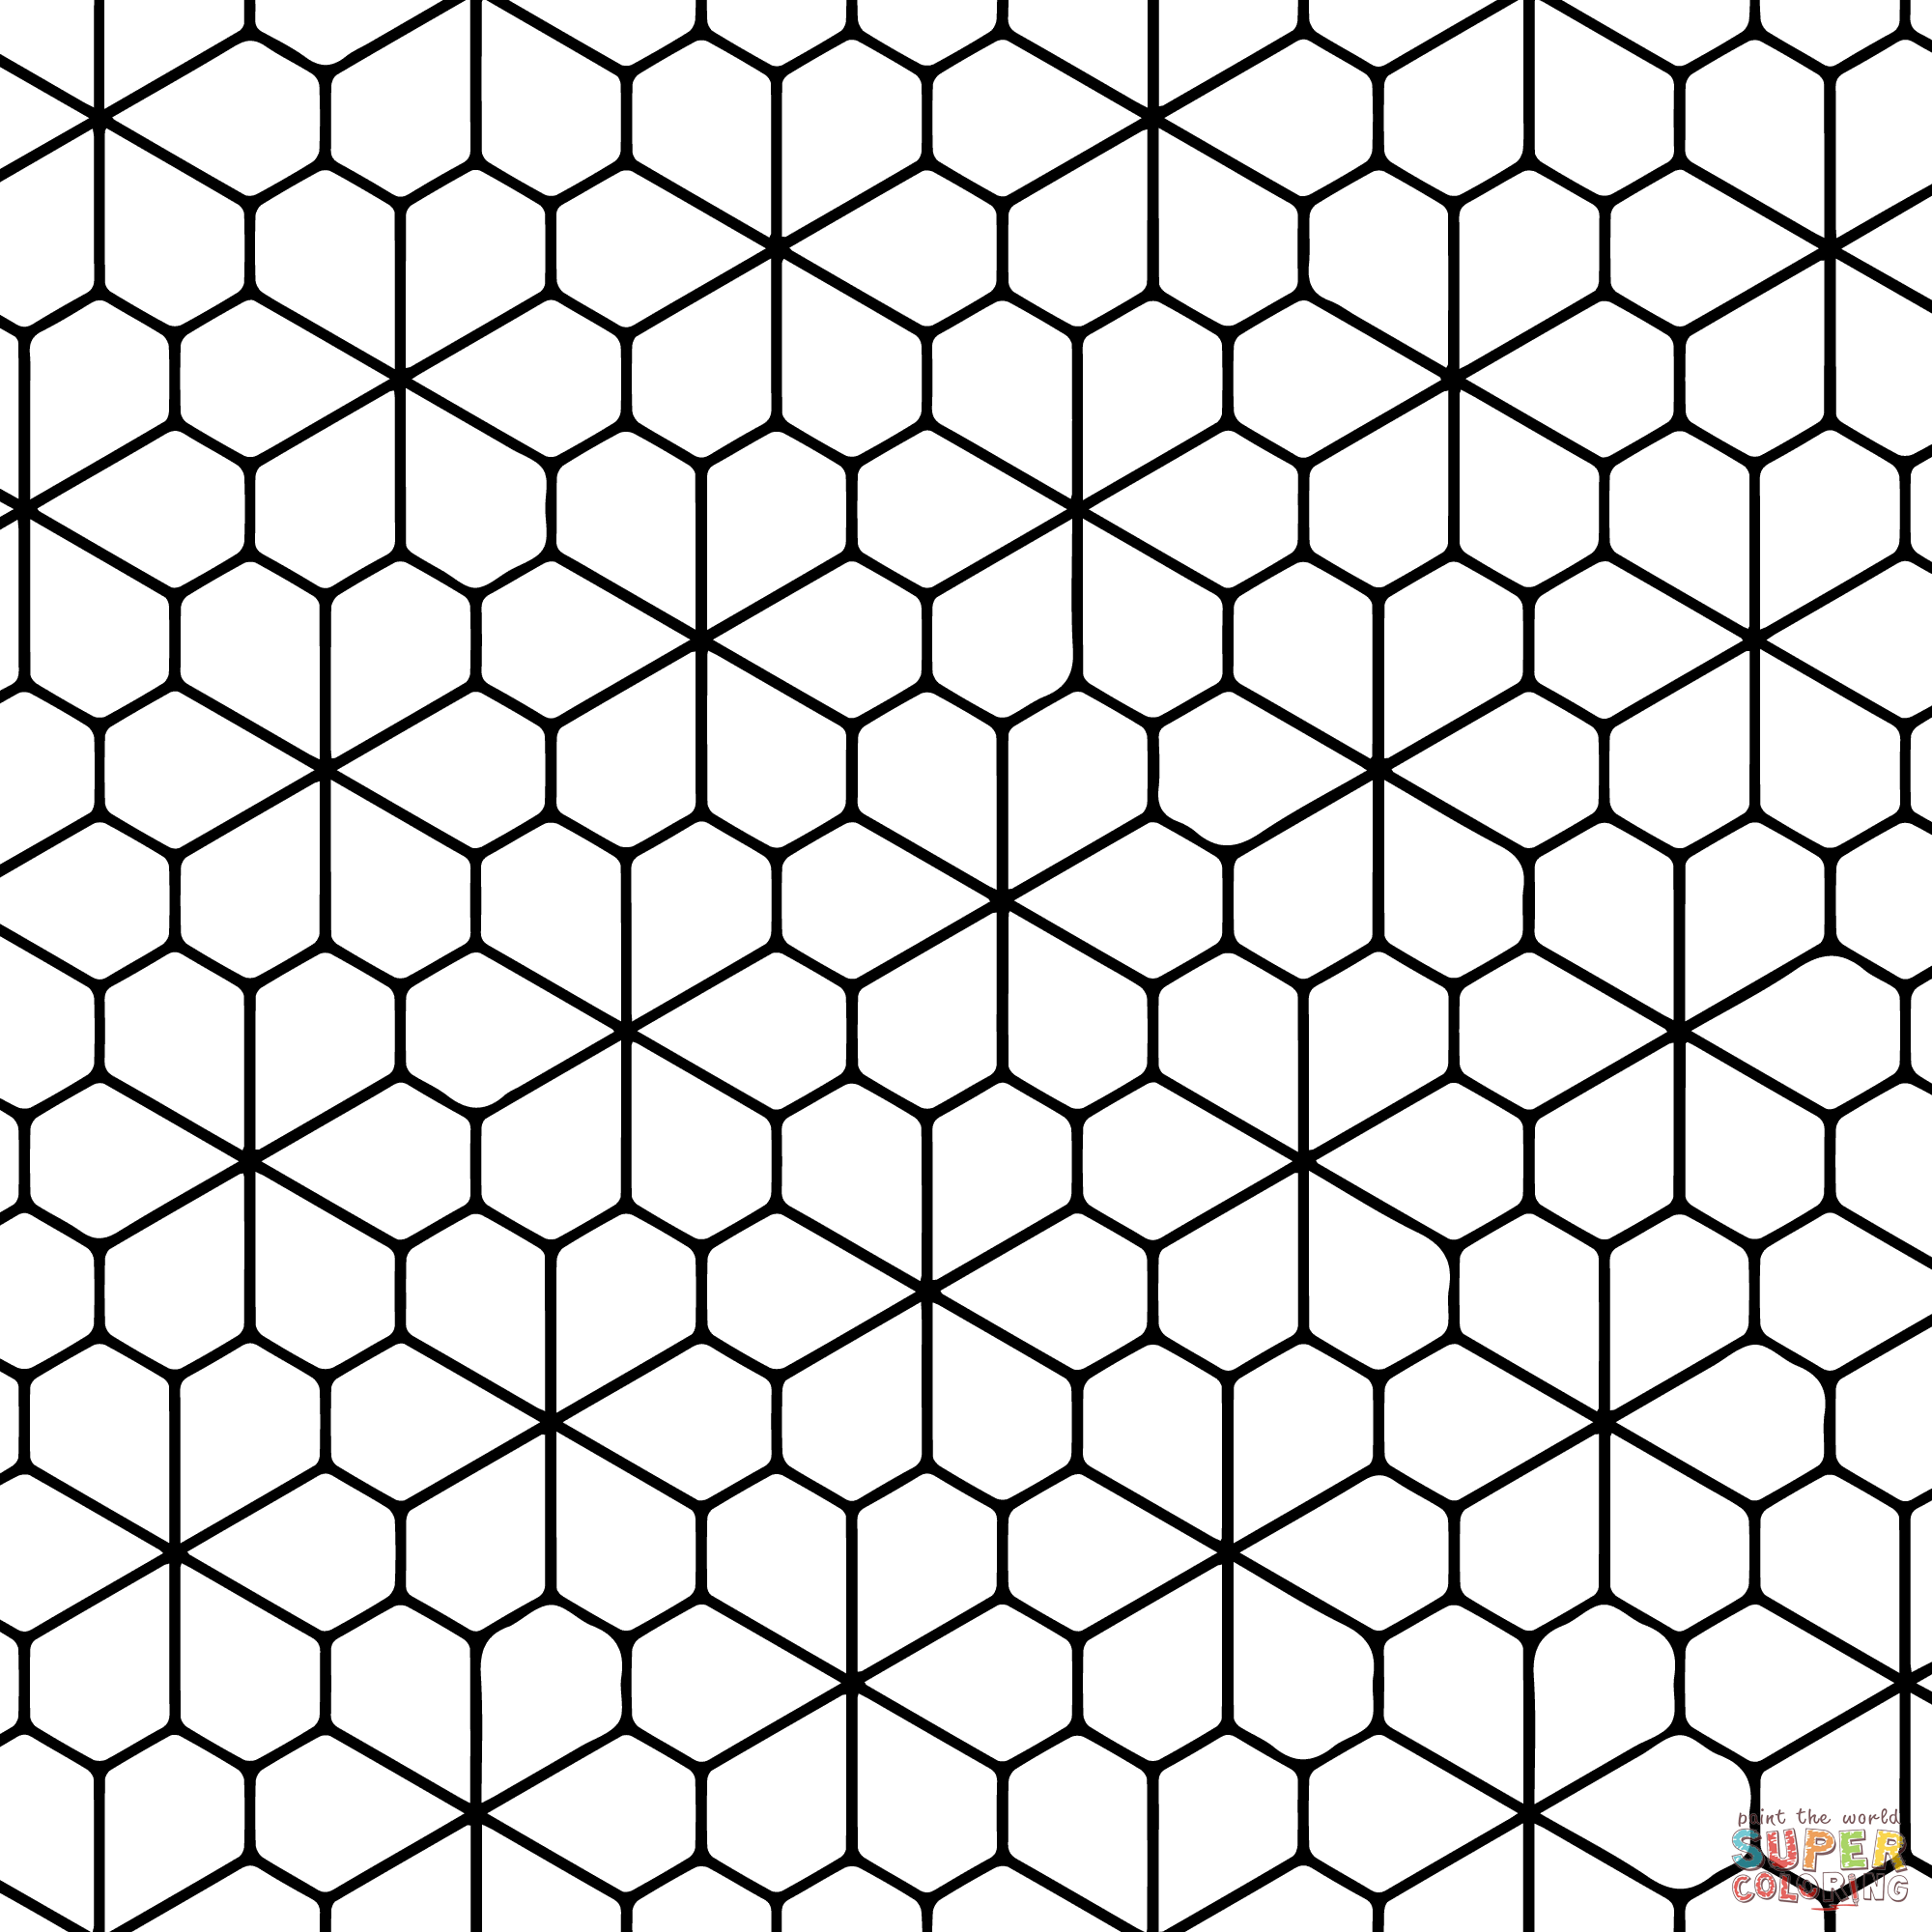 Tessellations Coloring Pages Printable Tessellations  Coloring Pages For Kids And For Adults .